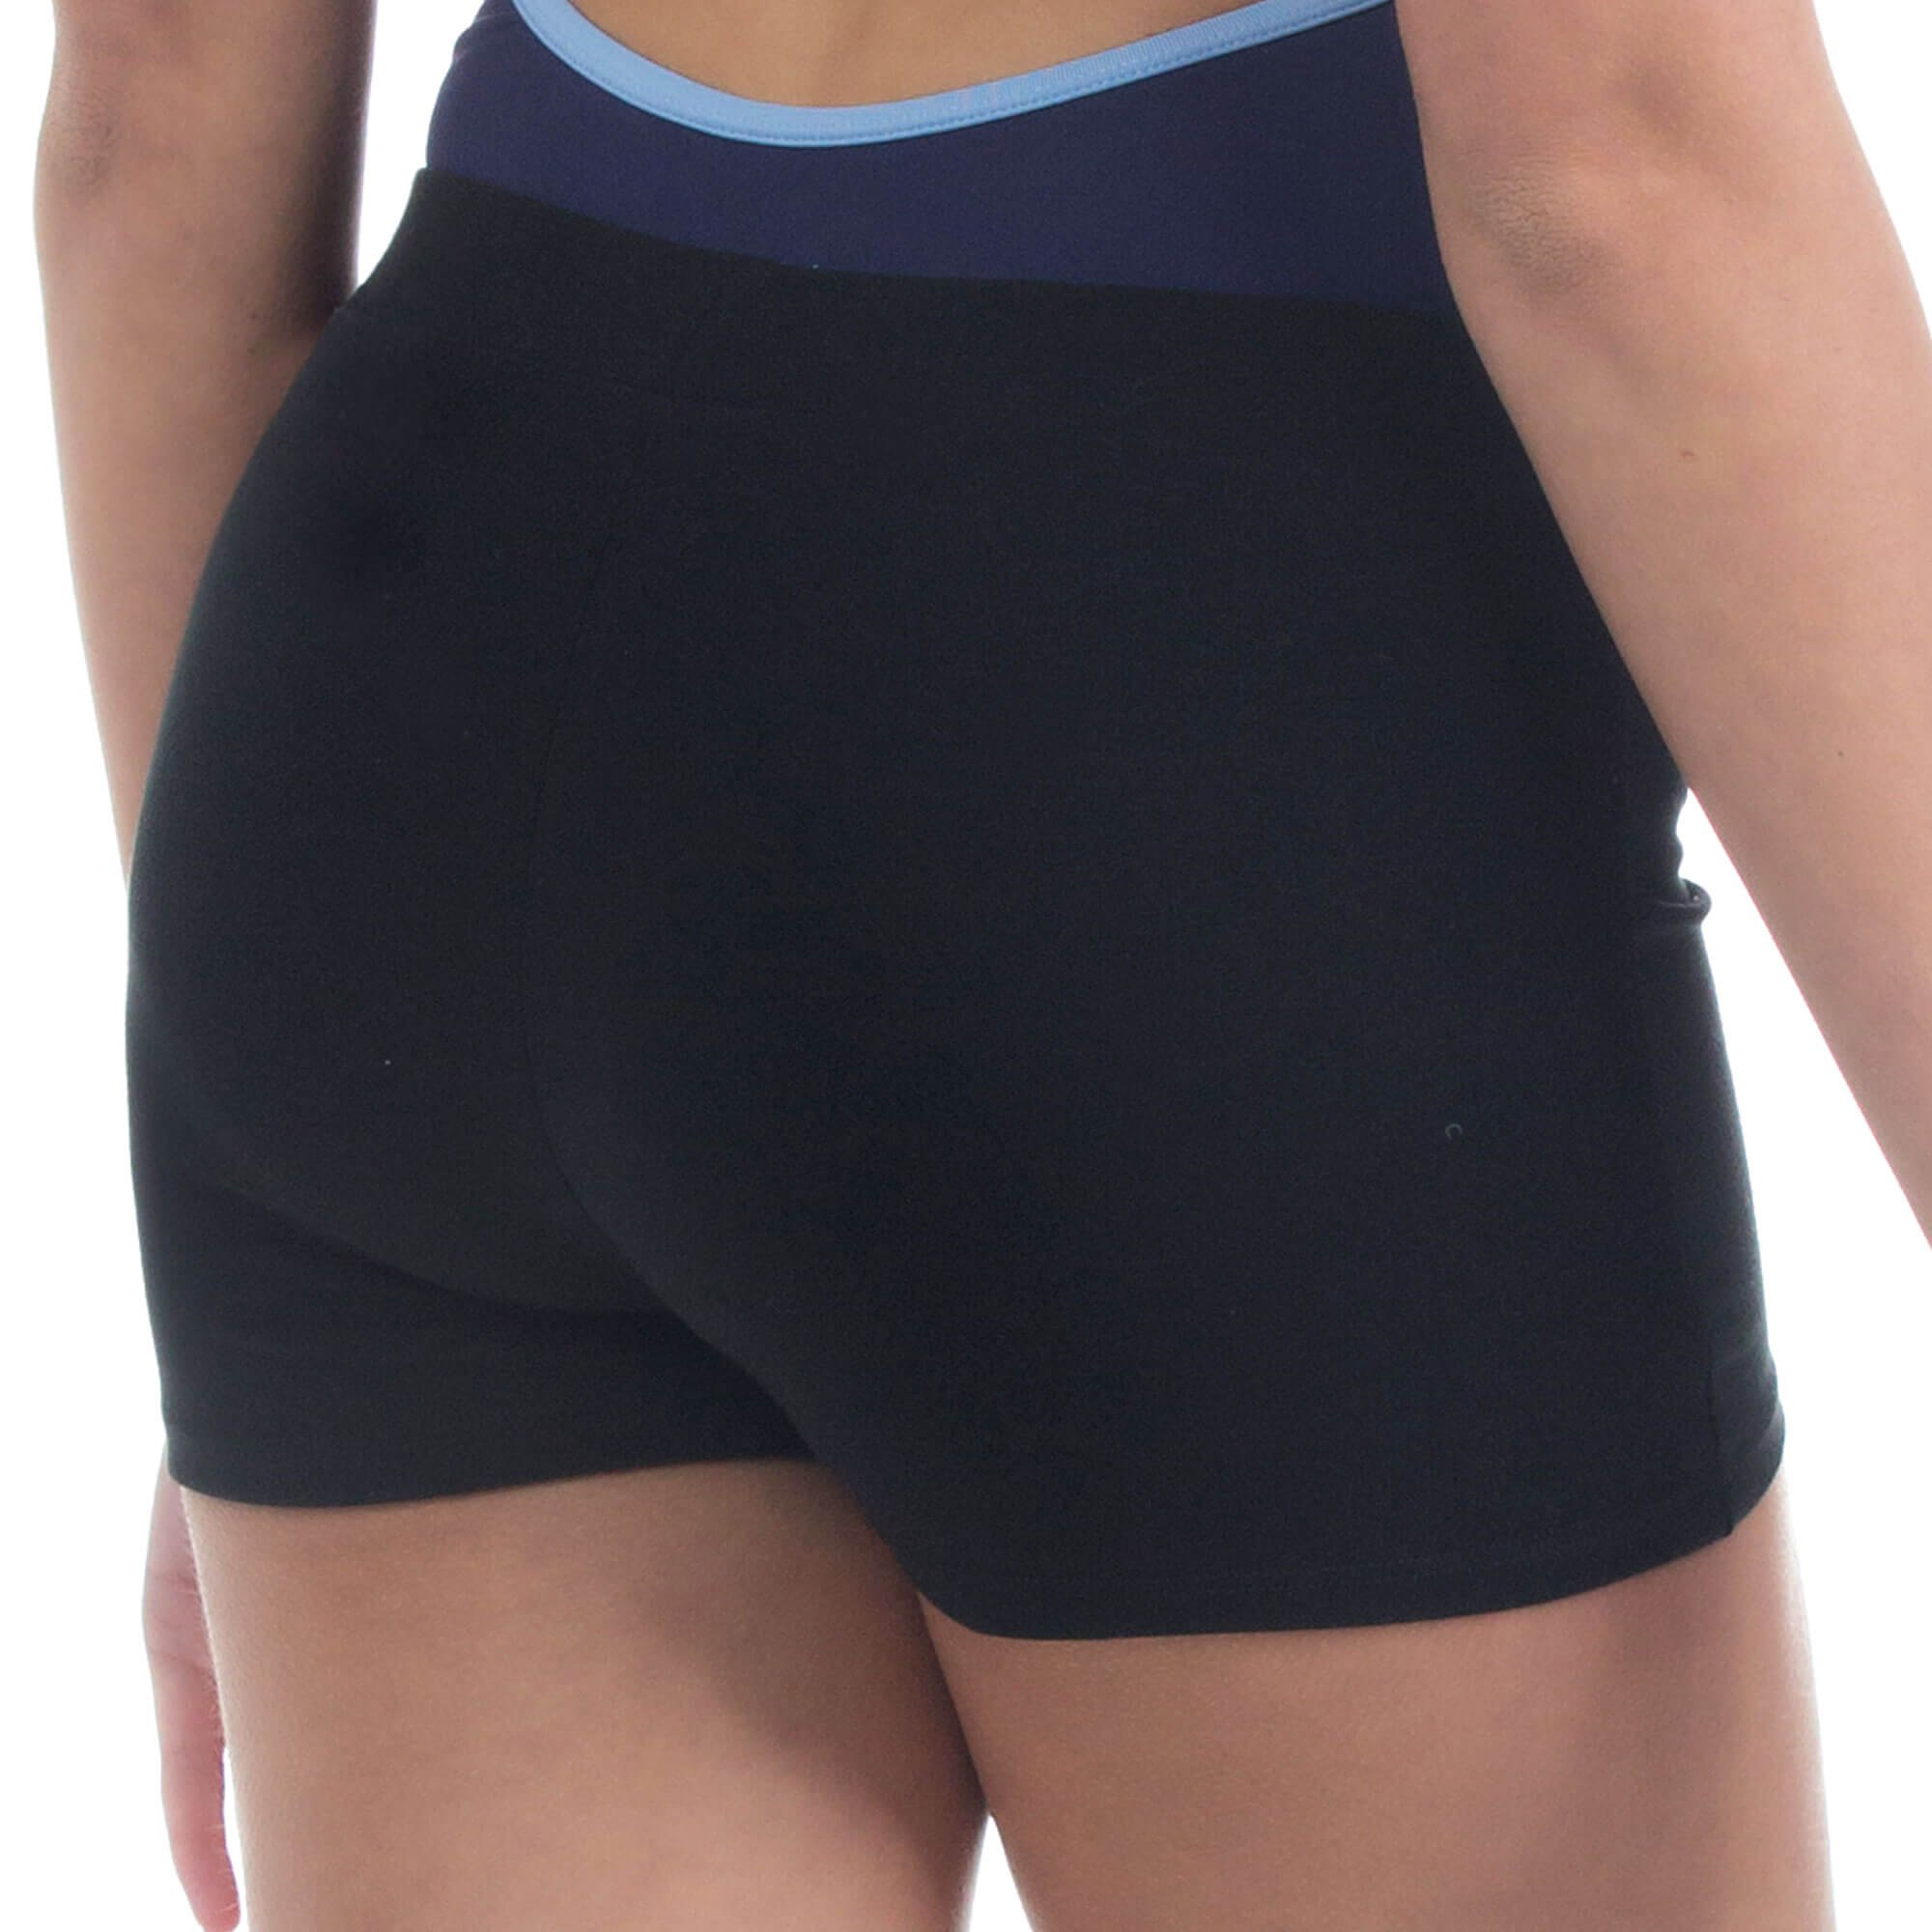 baiwu women's ballet dance short